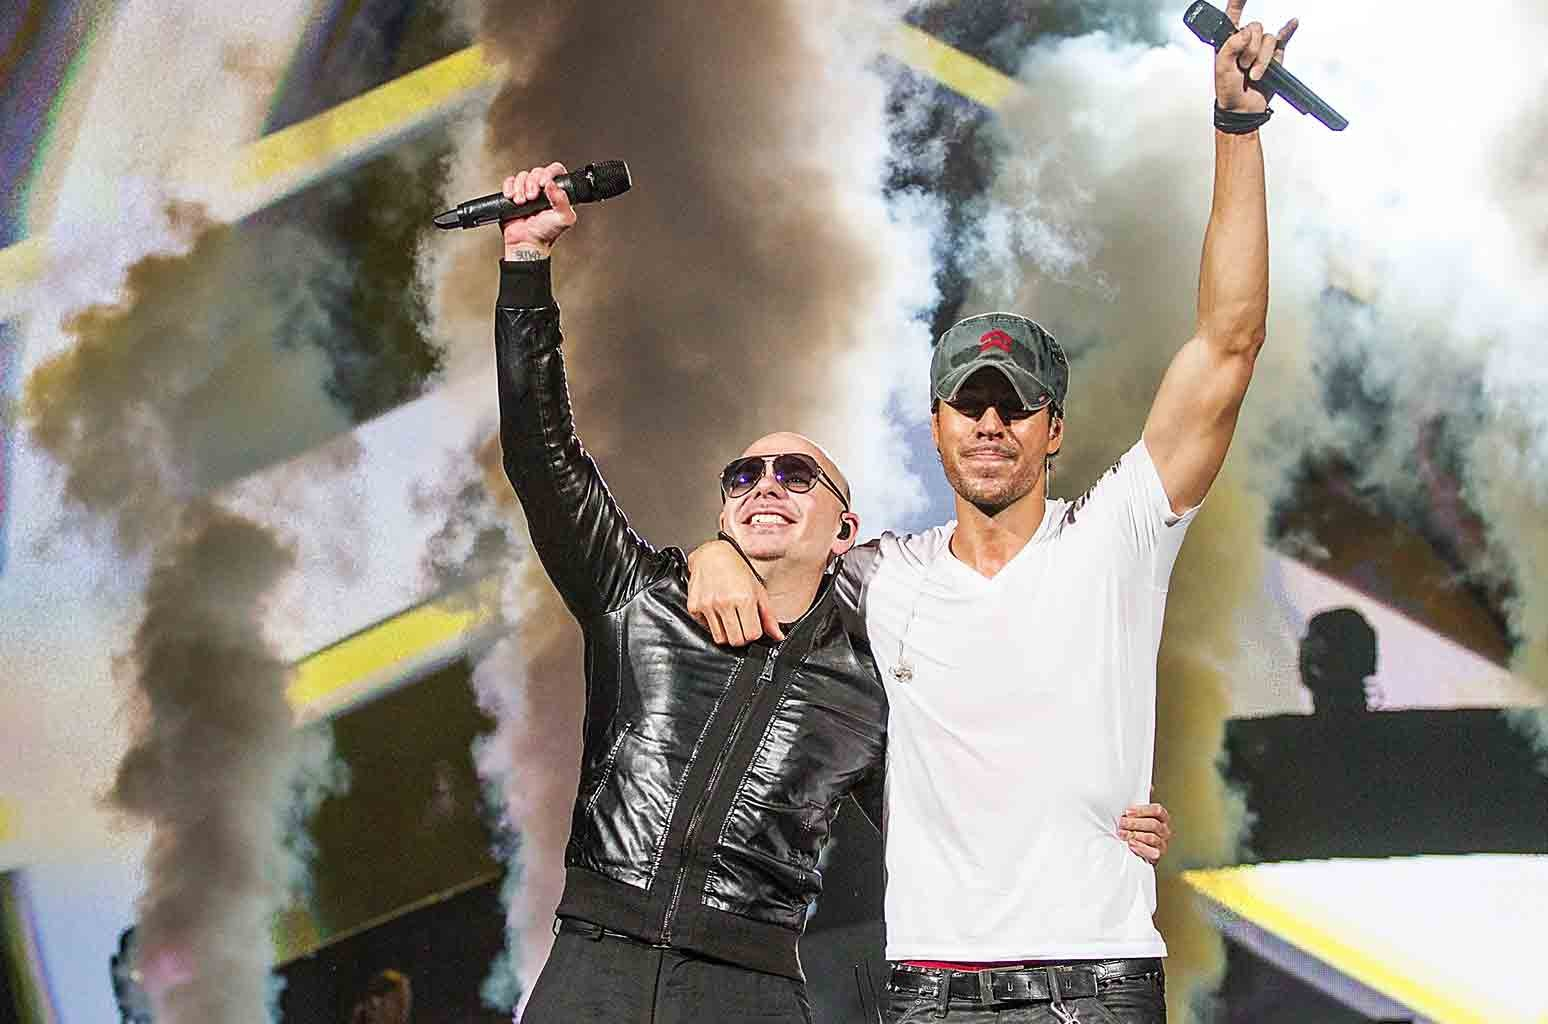 Pitbull and Enrique Iglesias perform in concert at The Frank Erwin Center on Feb. 7, 2015 in Austin, Texas.